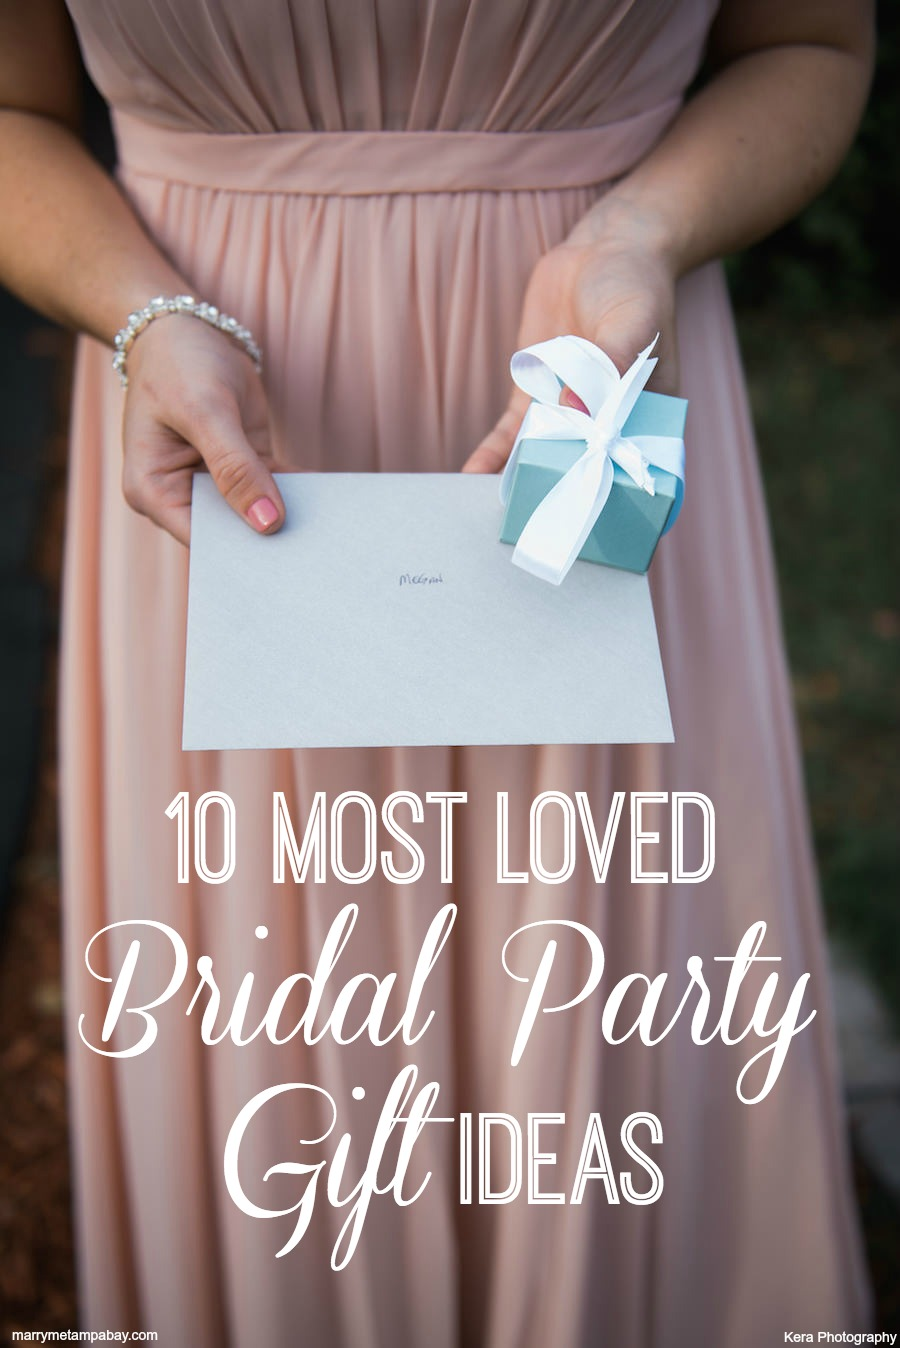 Wedding Parting Gift Ideas: 10 Most Loved Bridal Party Gift Ideas